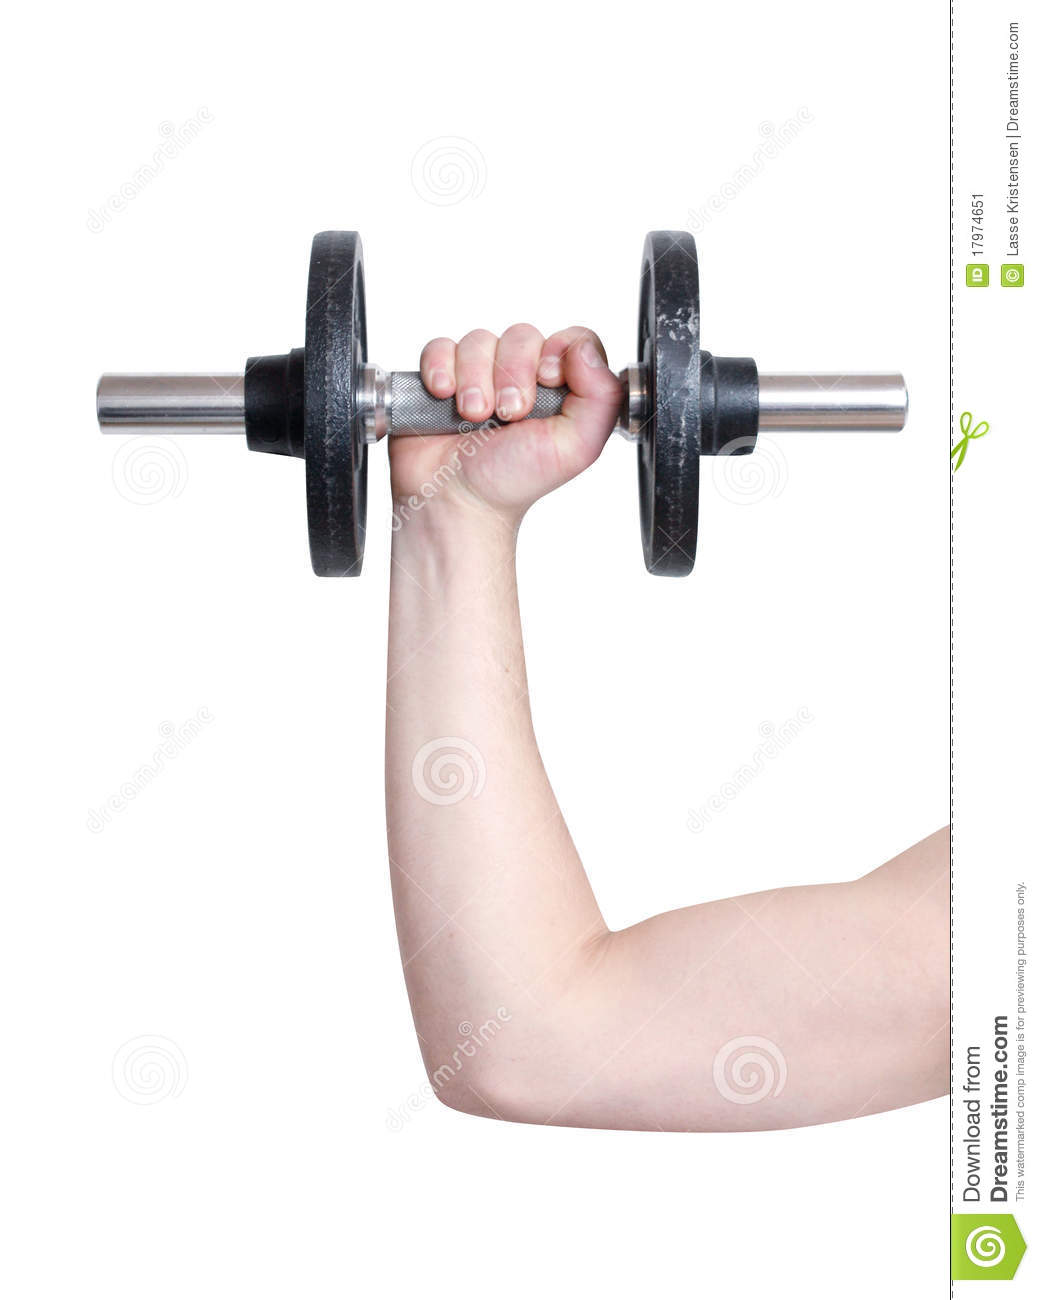 Arm Lifting Weight Stock Image - Image: 17974651